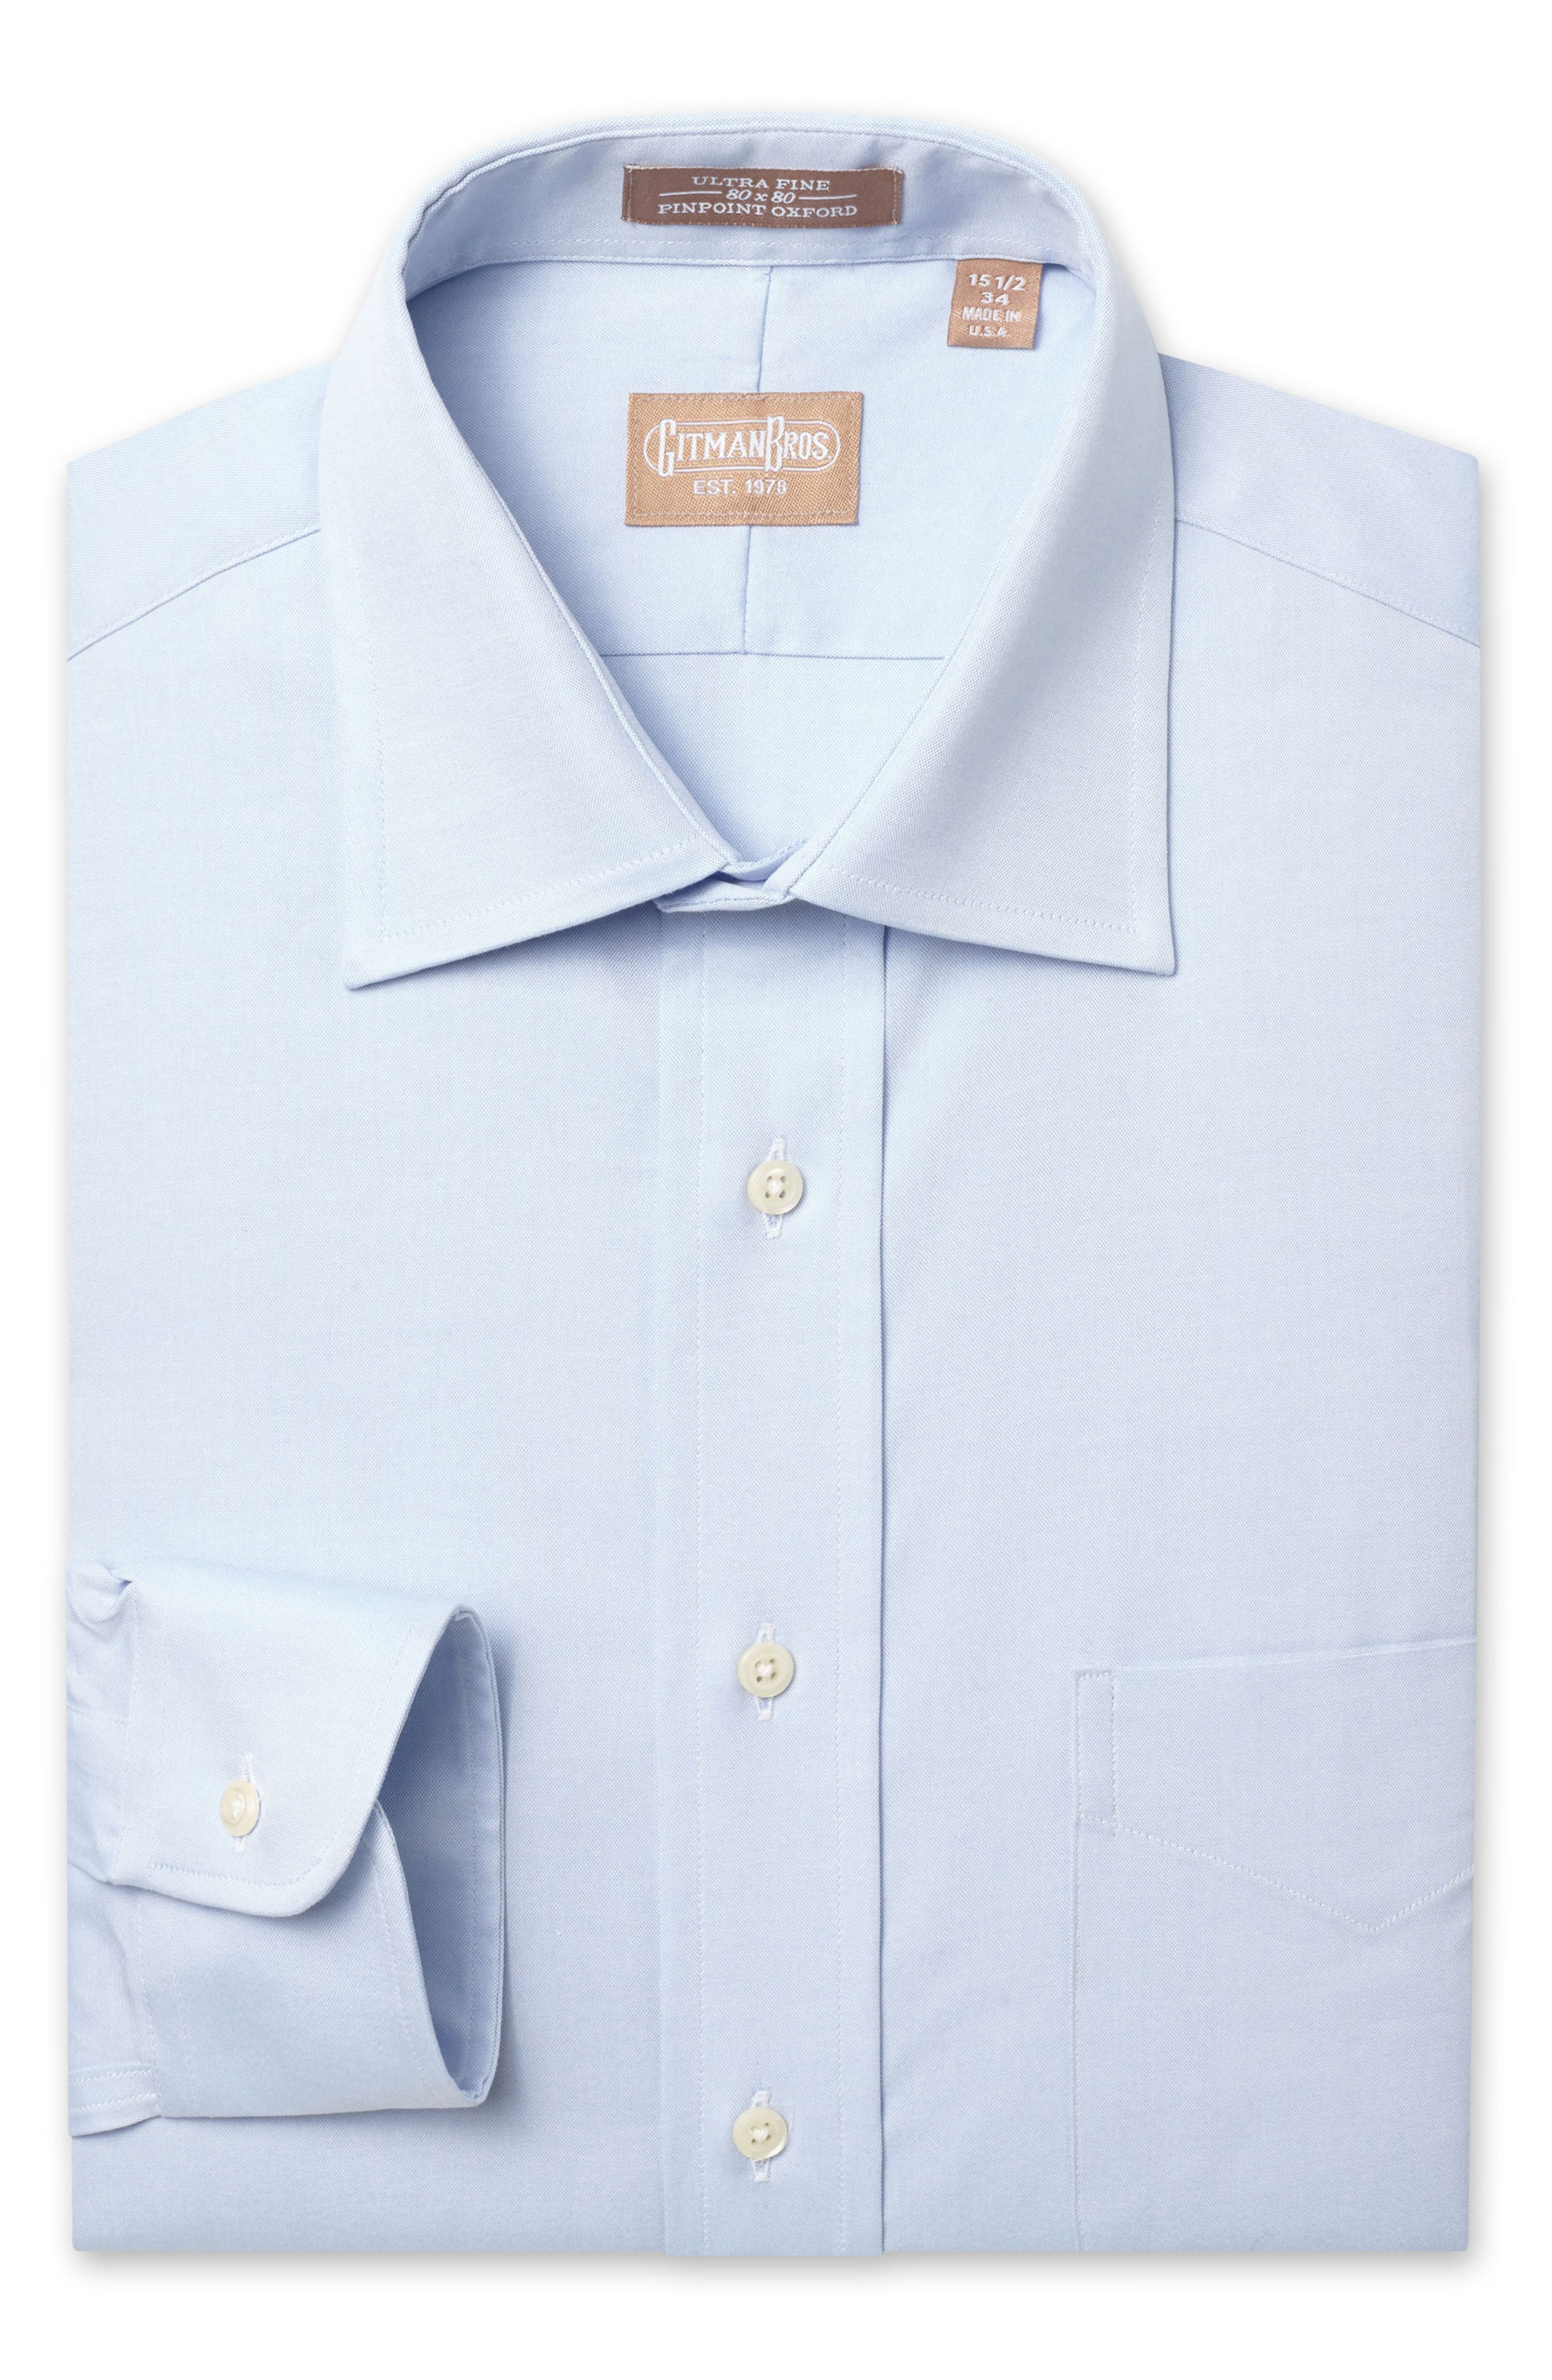 Regular Fit Pinpoint Cotton Oxford Point Collar Dress Shirt,                             Main thumbnail 1, color,                             LIGHT BLUE